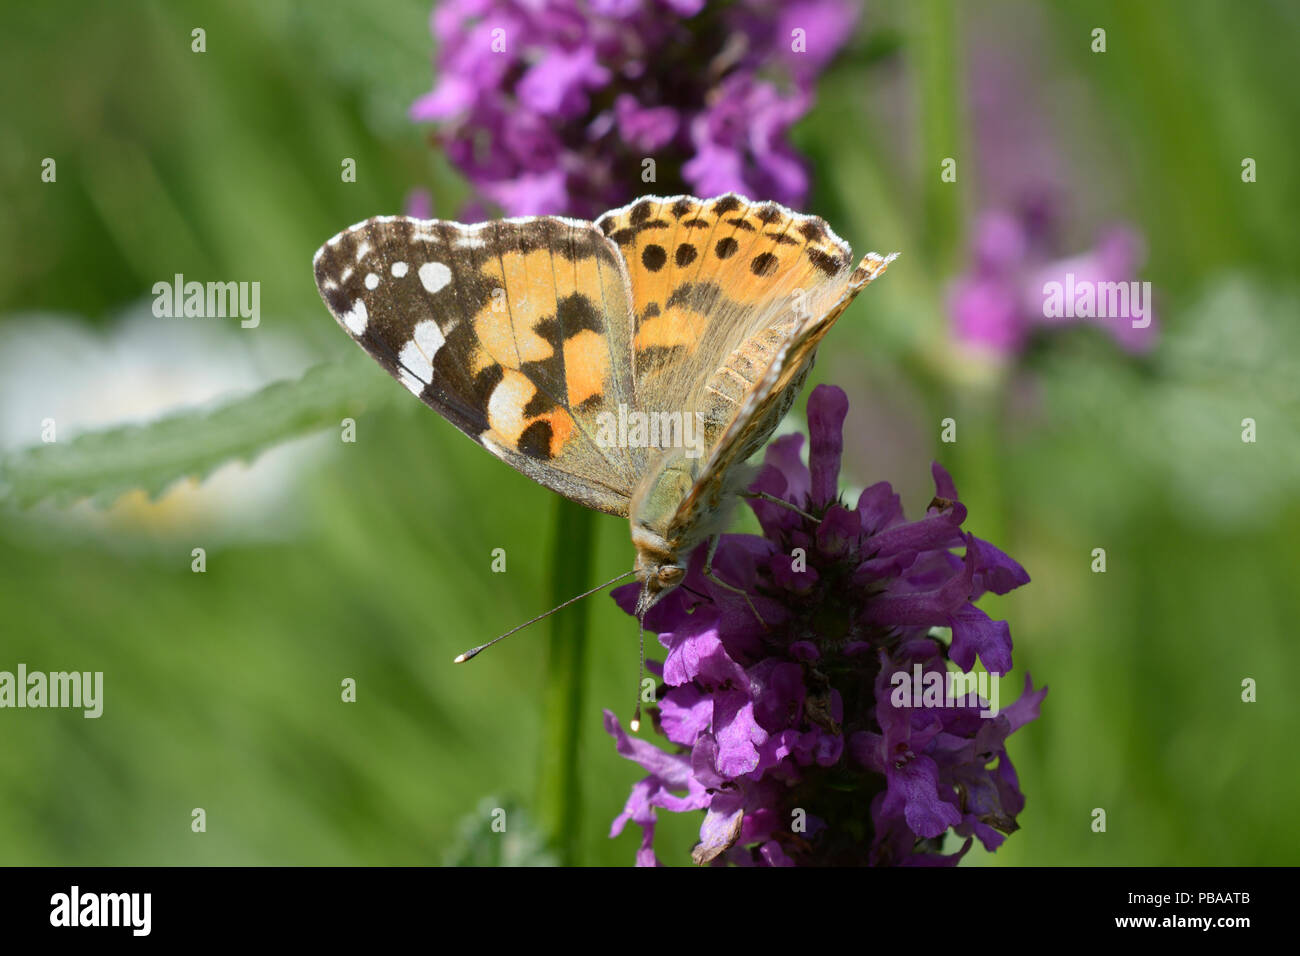 Yellow butterfly with black-spotted wings feeding on nectar from a purple wild flower - Stock Image